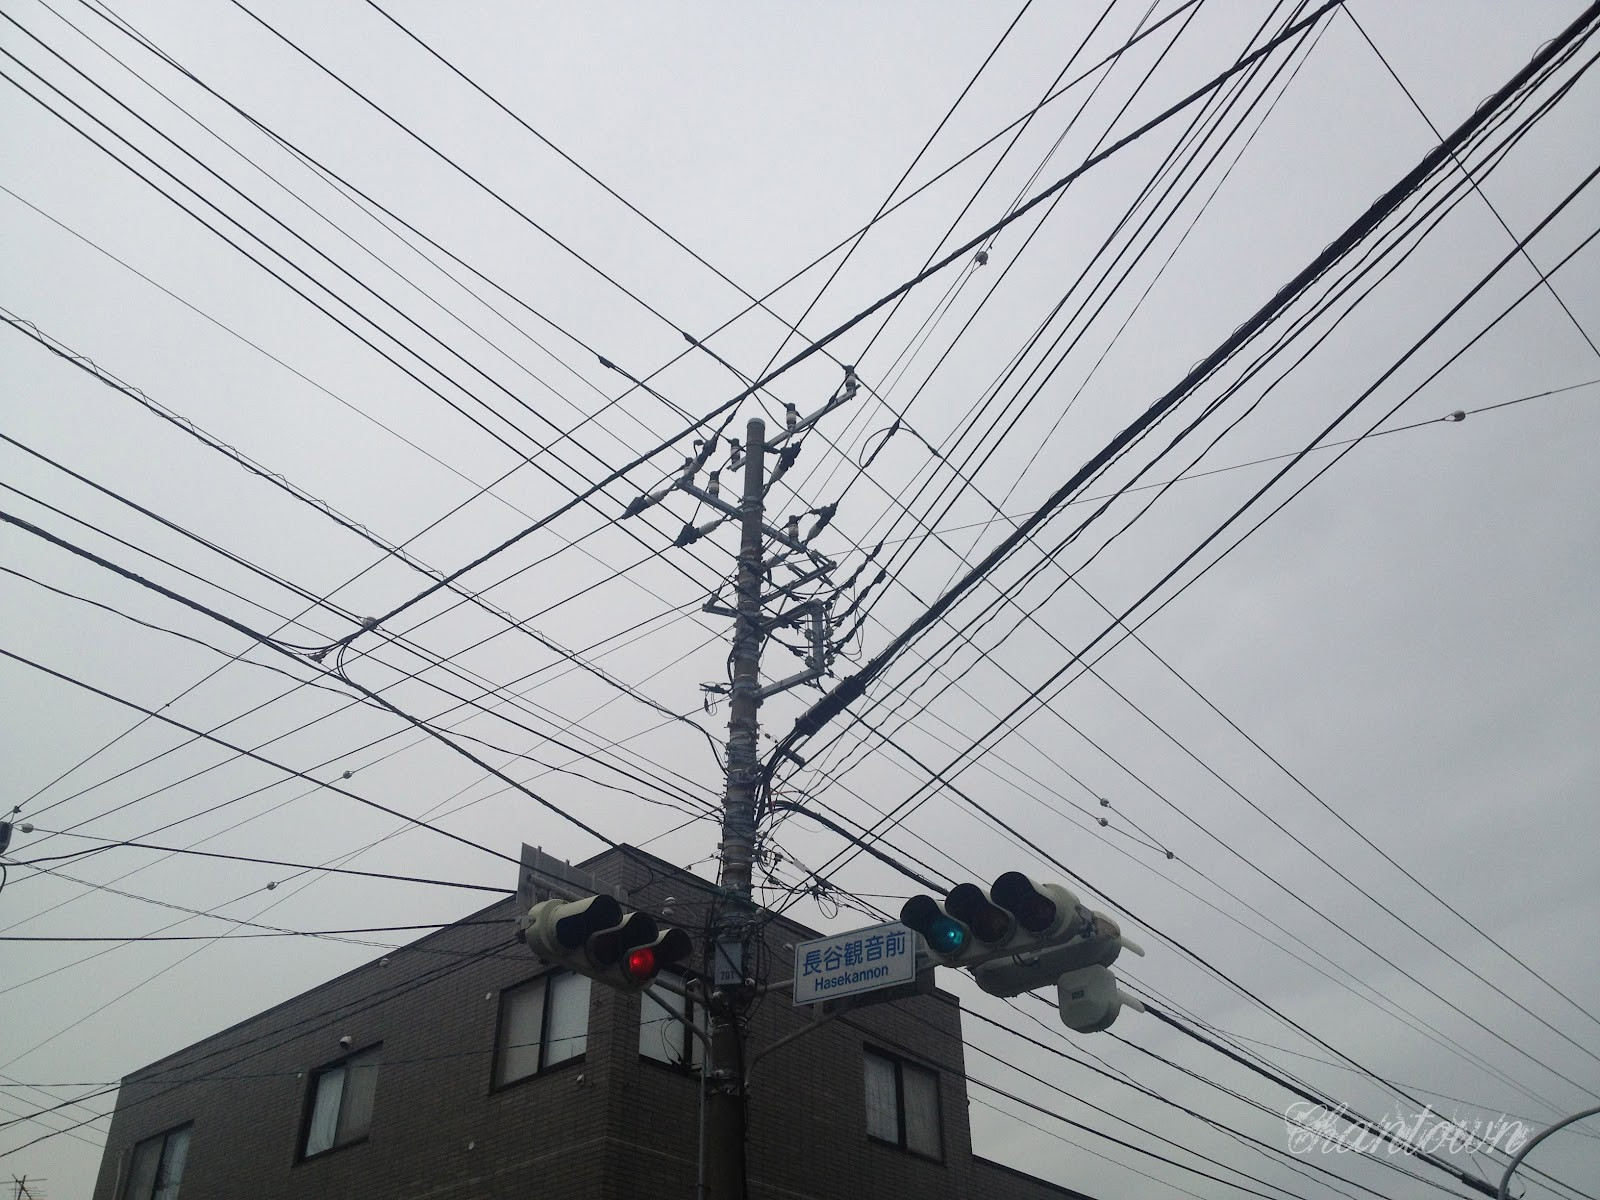 Notes from a small: Telegraph wires